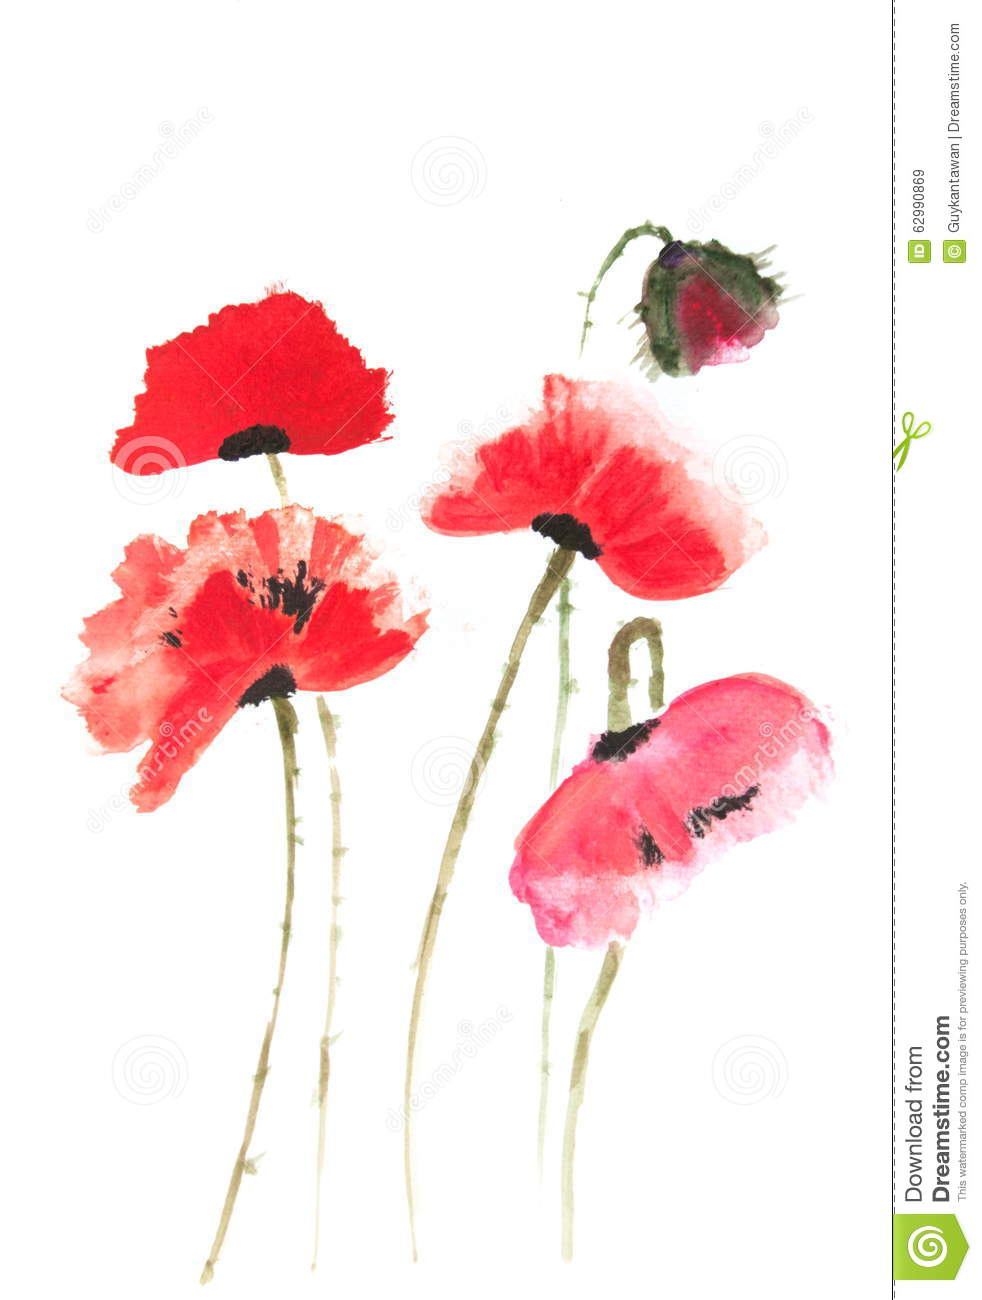 Red Poppy Flowers Painting Acrylic Color Painting Stock